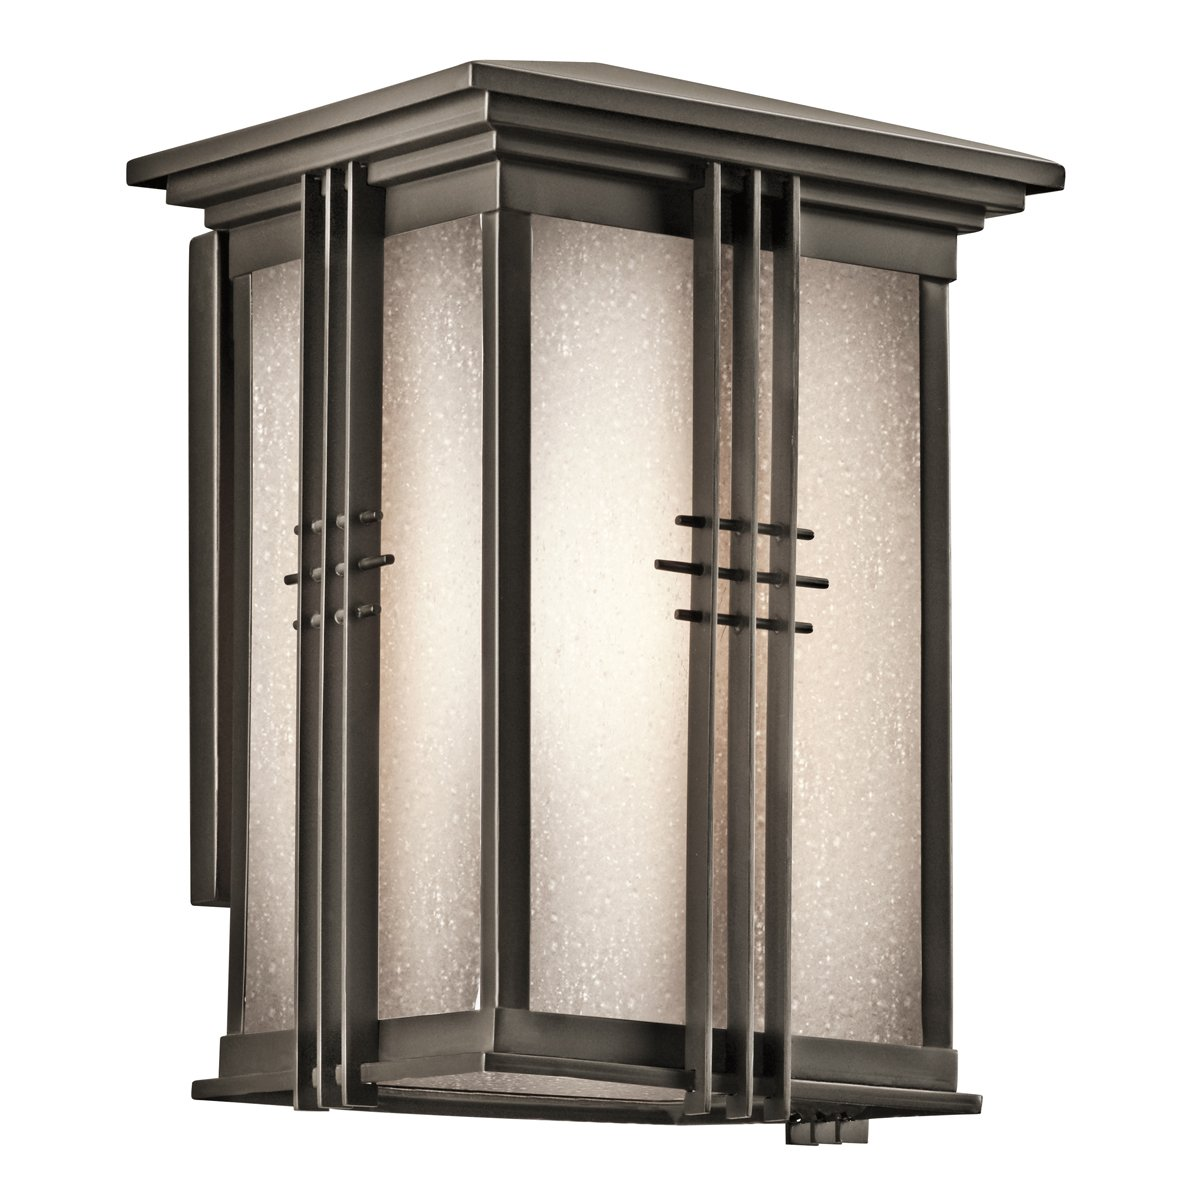 49158OZ Portman Square 1LT 11IN Exterior Wall Lantern, Olde Bronze Finish with Etched Seedy Glass by Kichler  B004MTT5W4